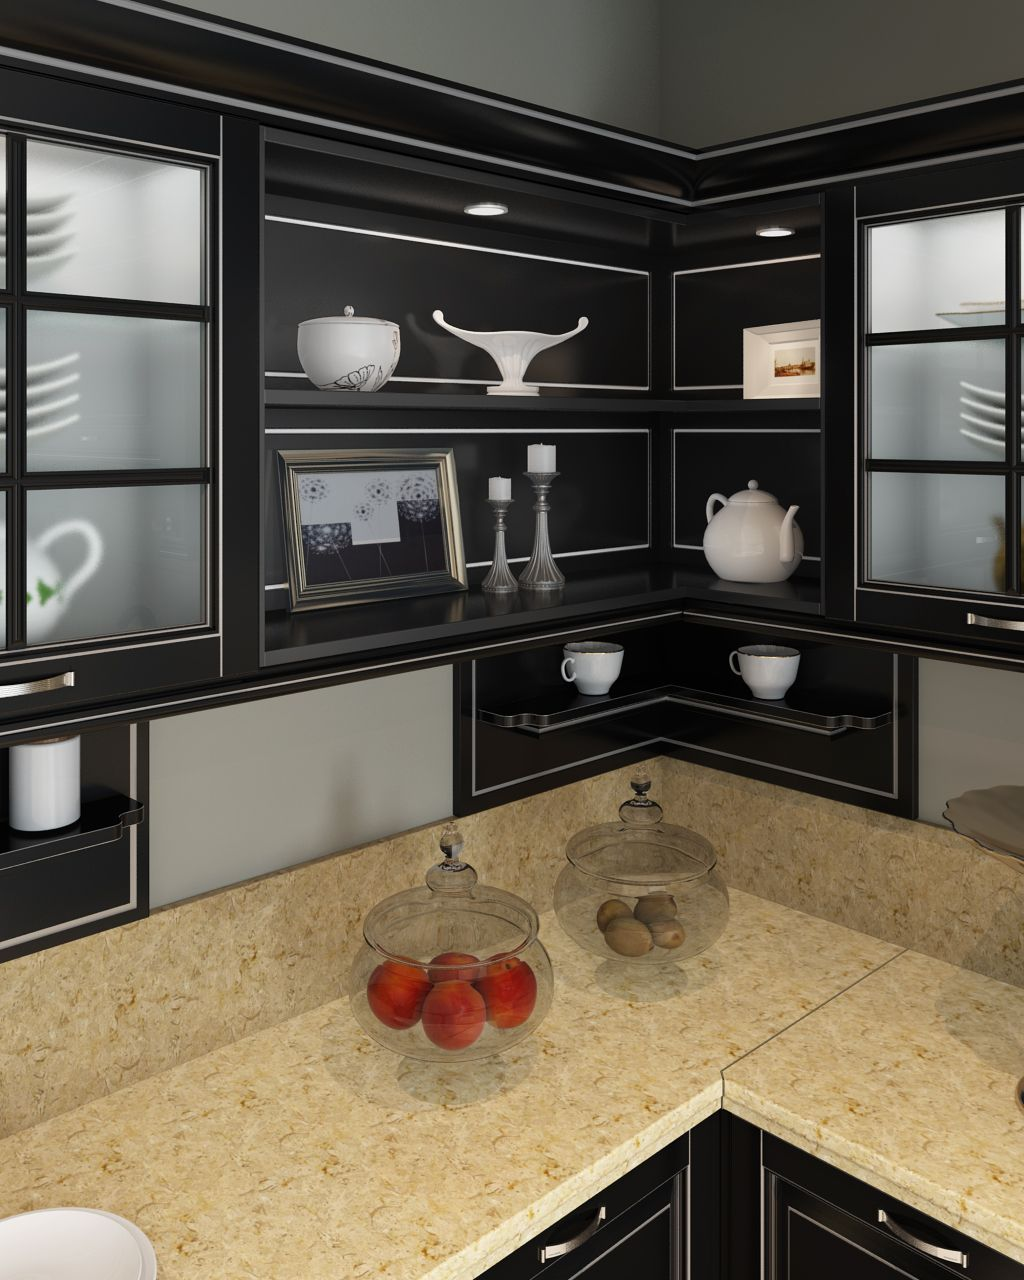 Pin By Zbomcabinets On Guraso Kitchen Cabinet Manufacturers Kitchen Kitchen Cabinets